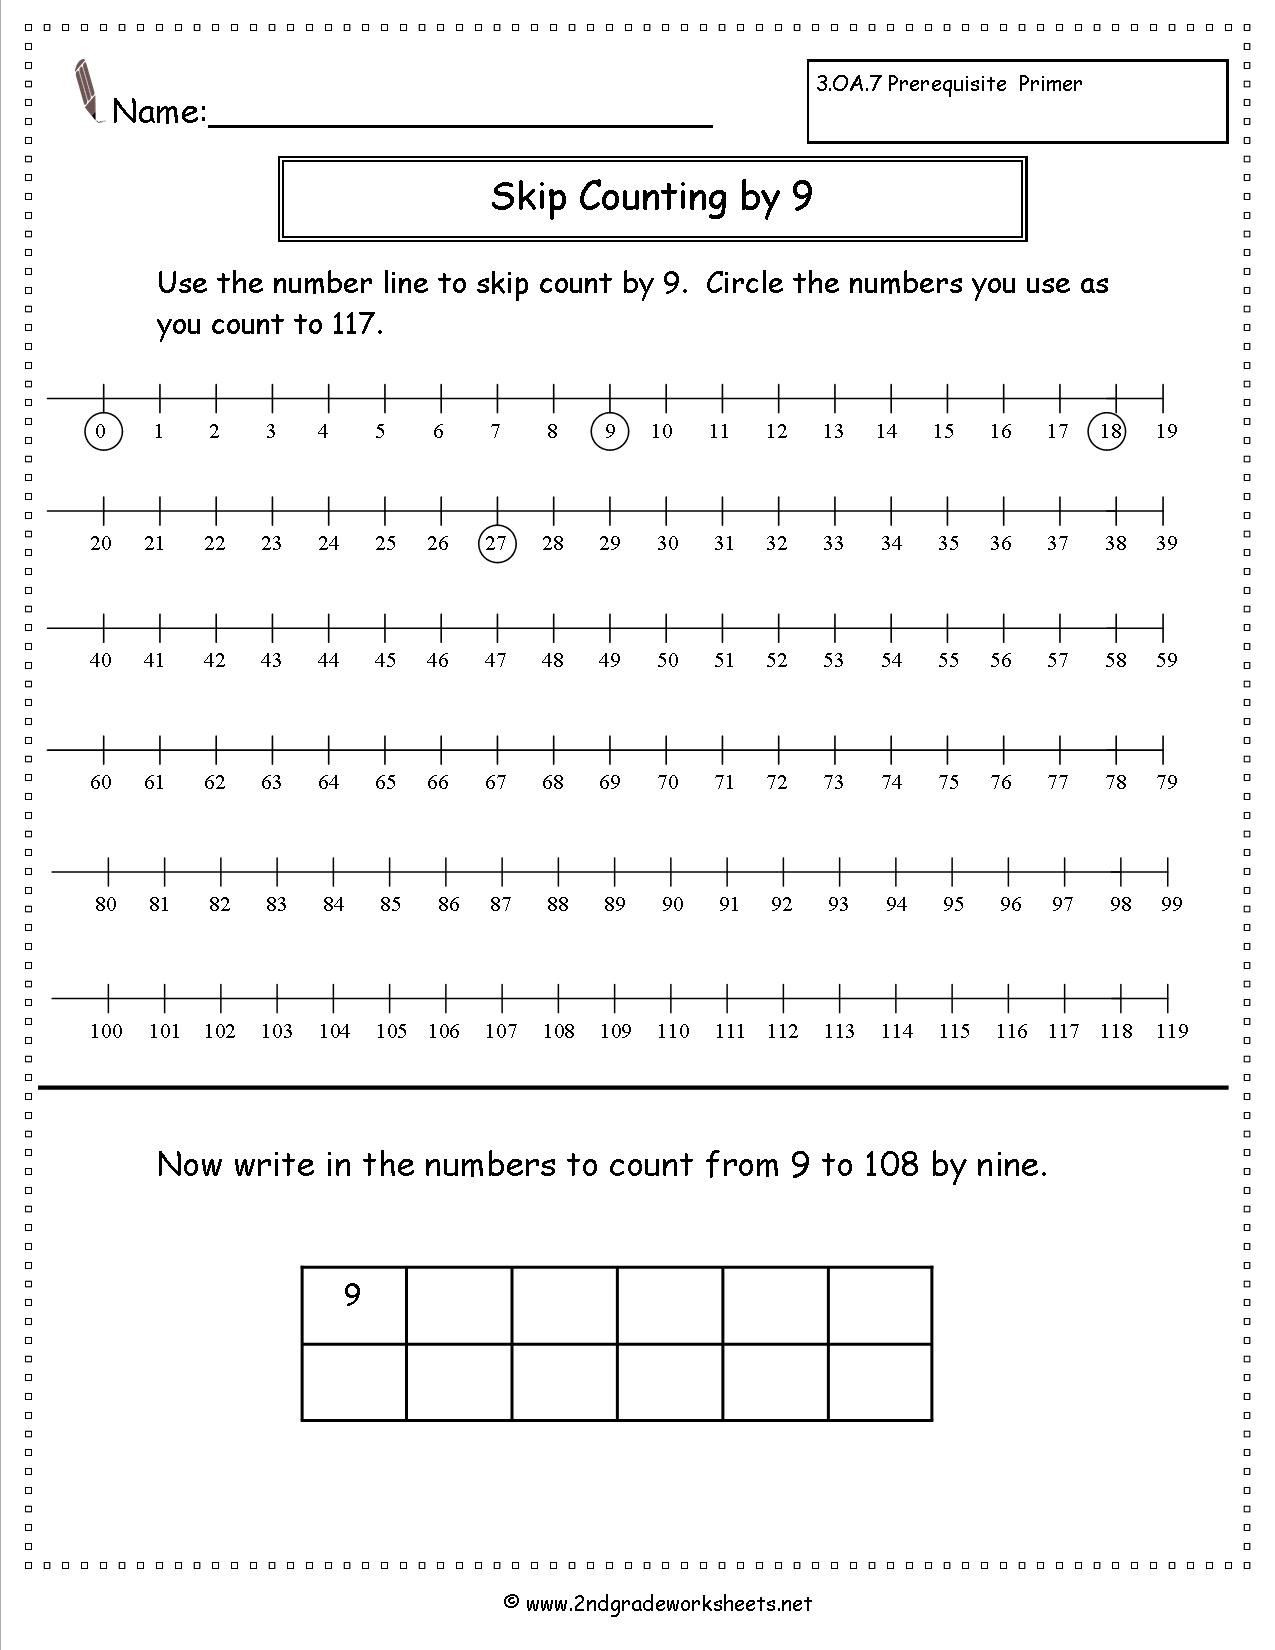 Second Grade Number Line Worksheets Free Skip Counting Worksheets Multiple Styles All Single